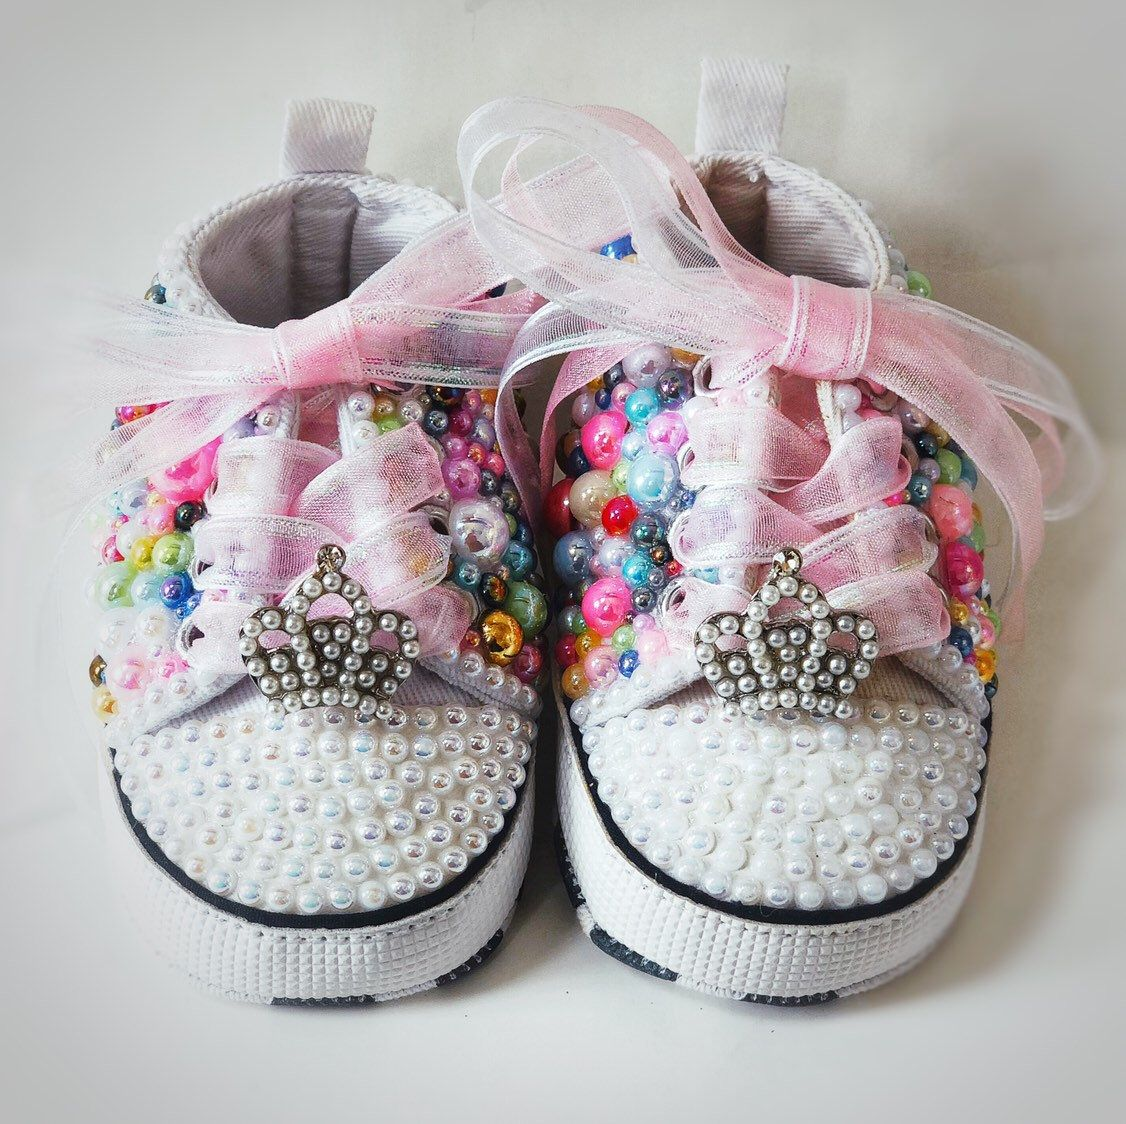 266e0c8f1bbffc Excited to share the latest addition to my  etsy shop  Pearl Baby Shoes   clothing  shoes  children  rainbow  babyshower  1baby  baby  bling   rhinestones